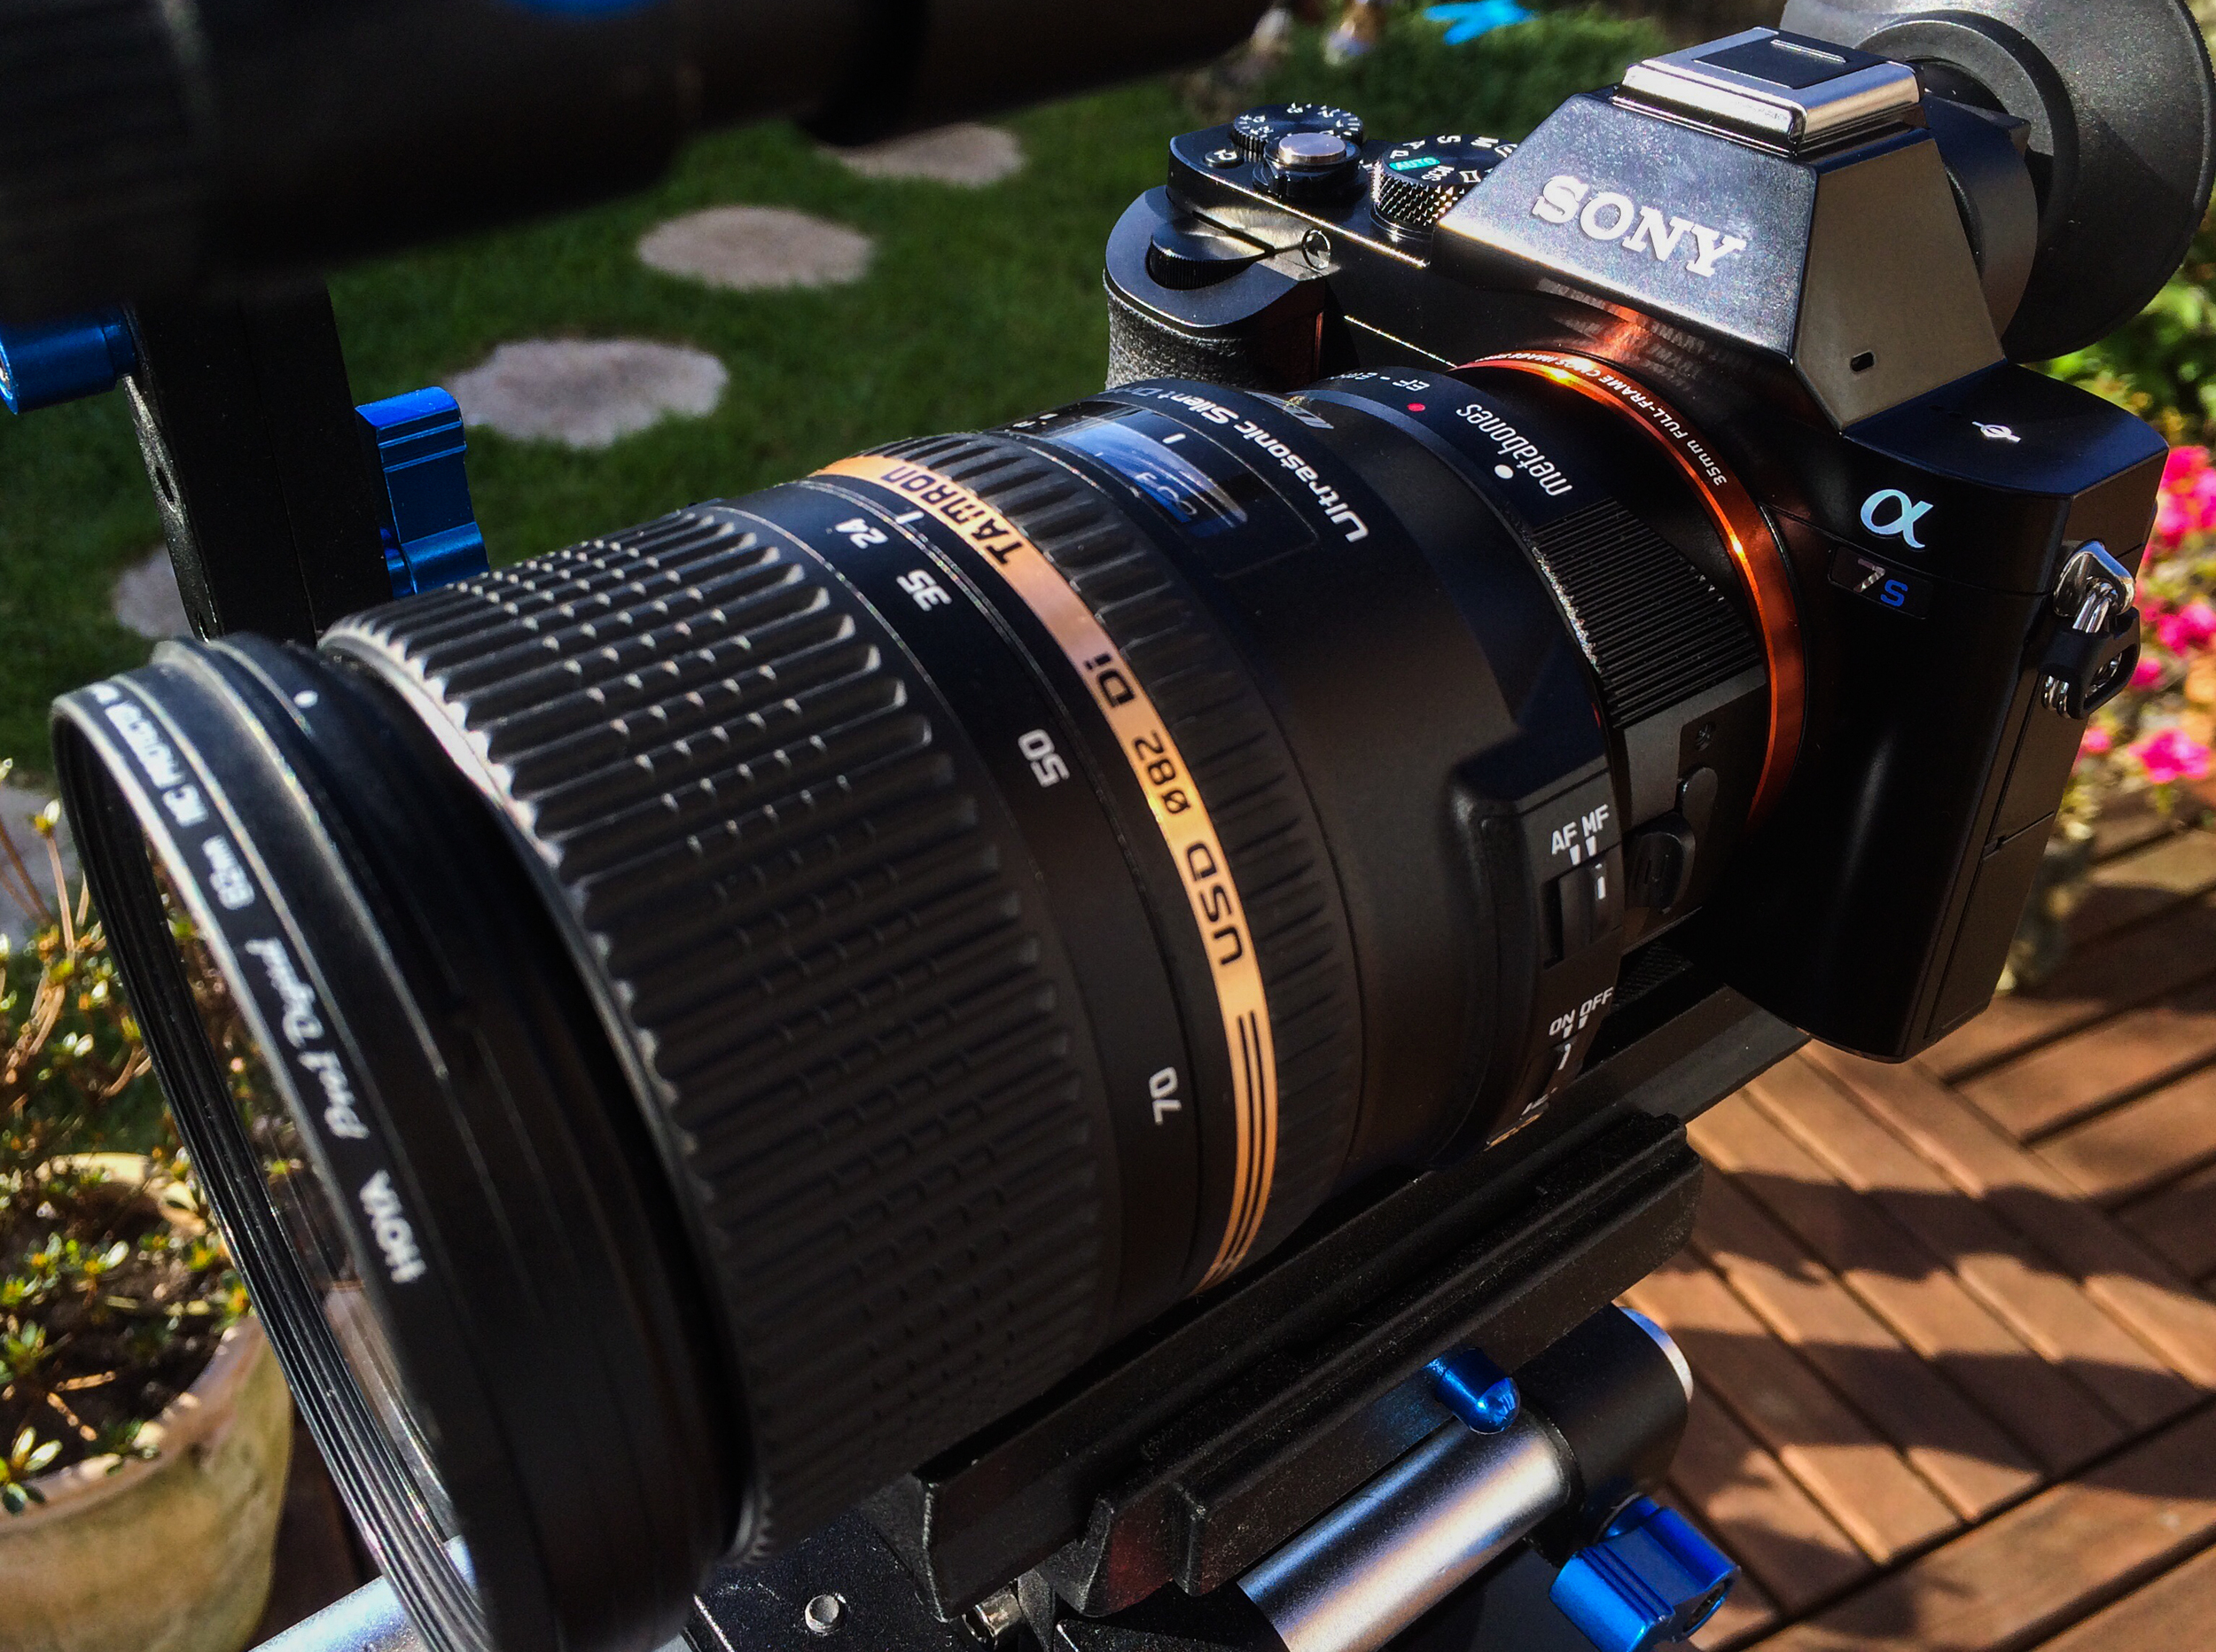 A7S and Tamron 24-70 with metabones in the cage. Soon to be replaced by the Movcam rails kit.